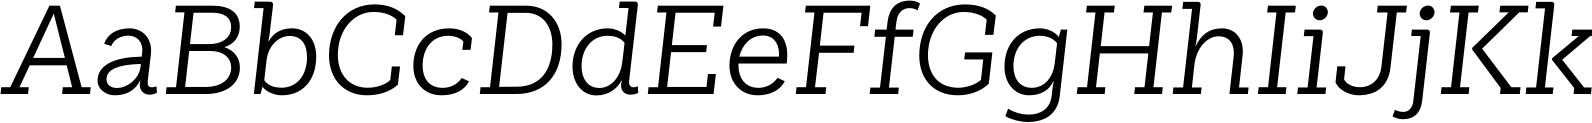 Weekly Regular Italic Font